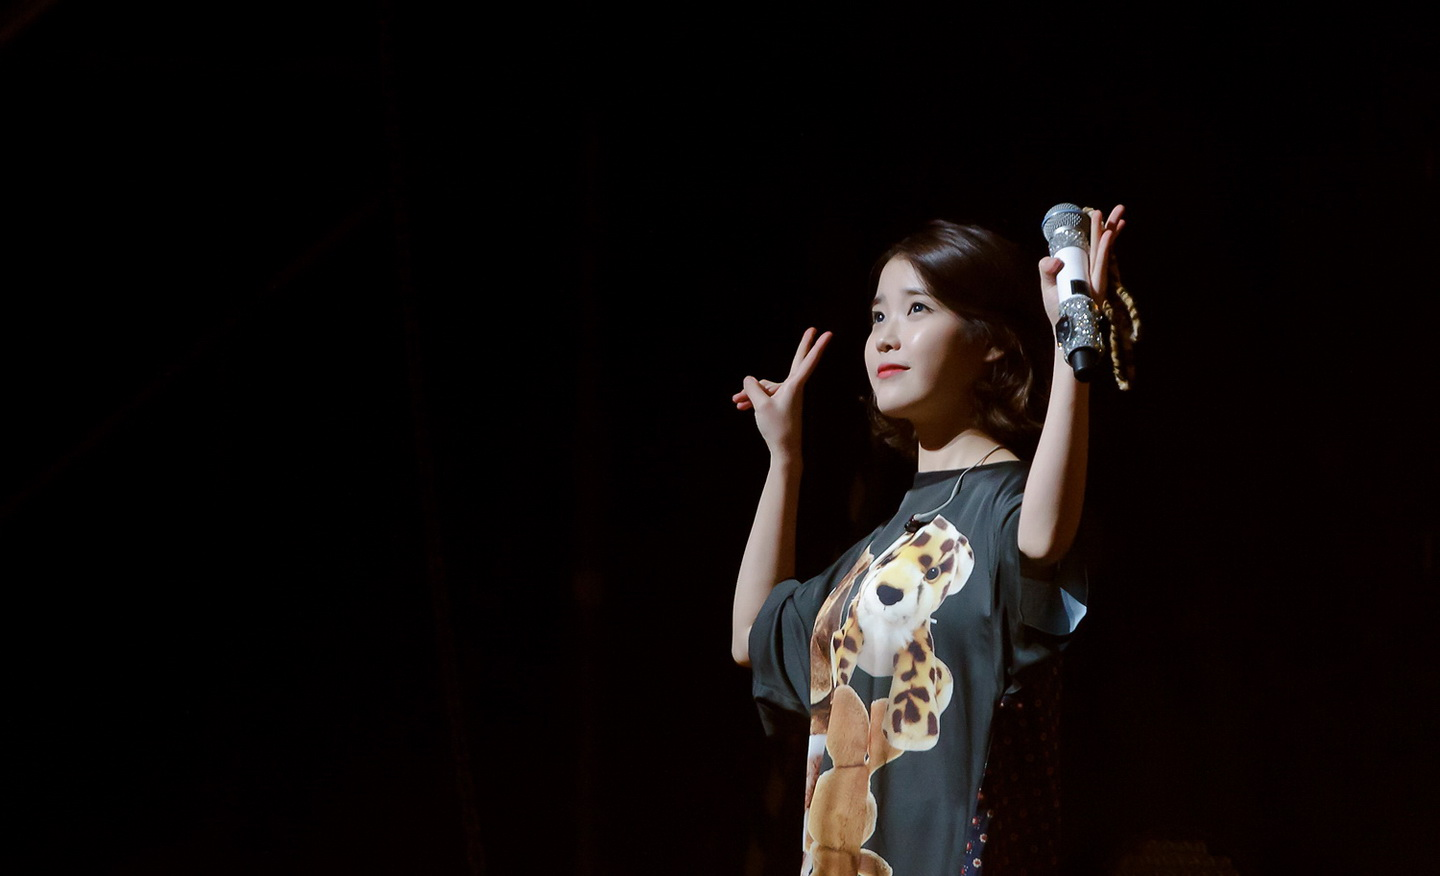 iu computer wallpapers desktop backgrounds 1440x876